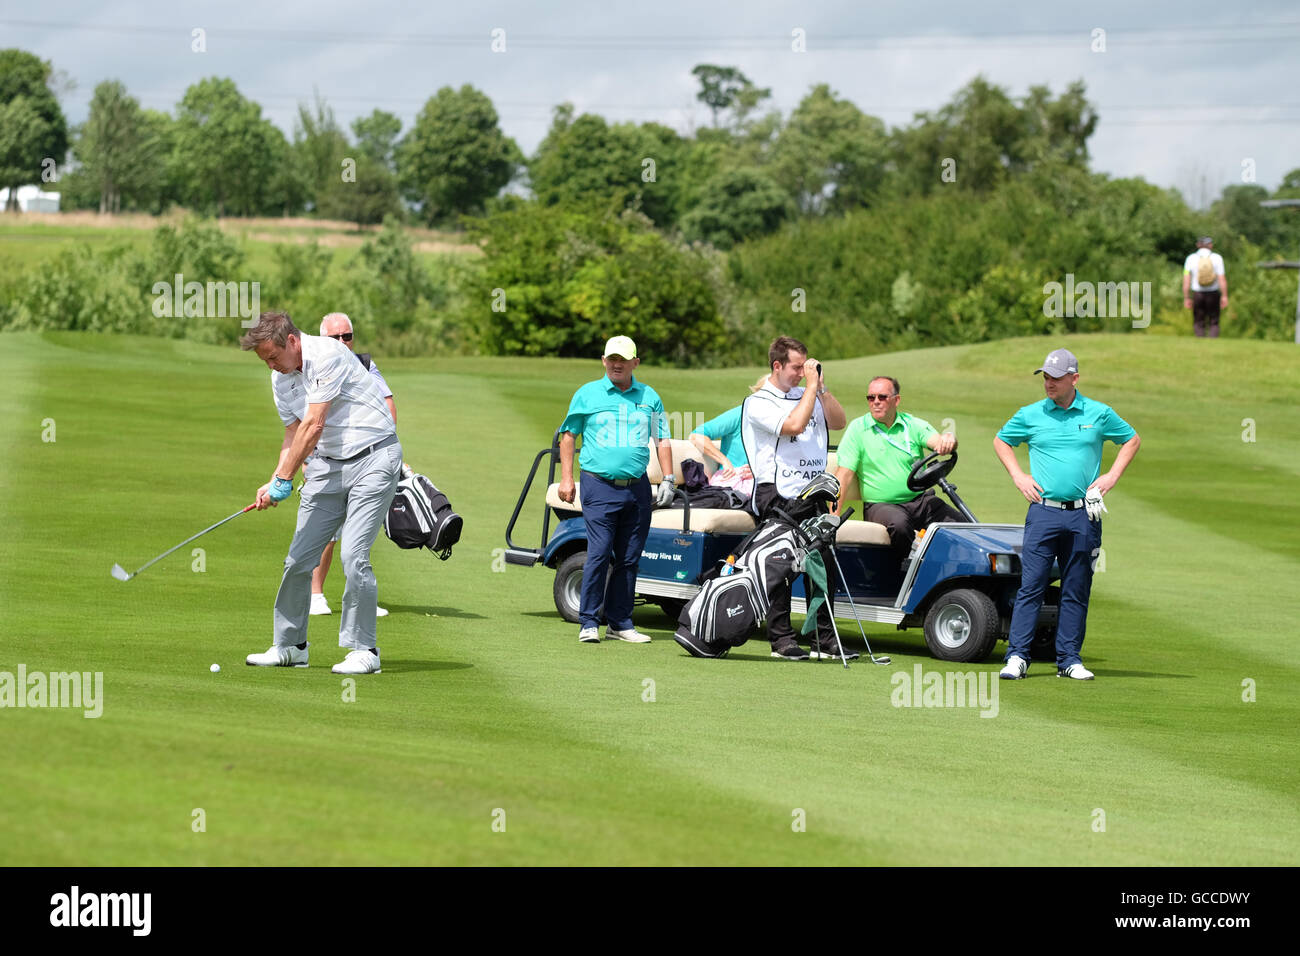 Celtic Manor, Newport, Wales - Saturday 9th July 2016 - The Celebrity Cup golf competition entrepreneur Peter Jones - Stock Image